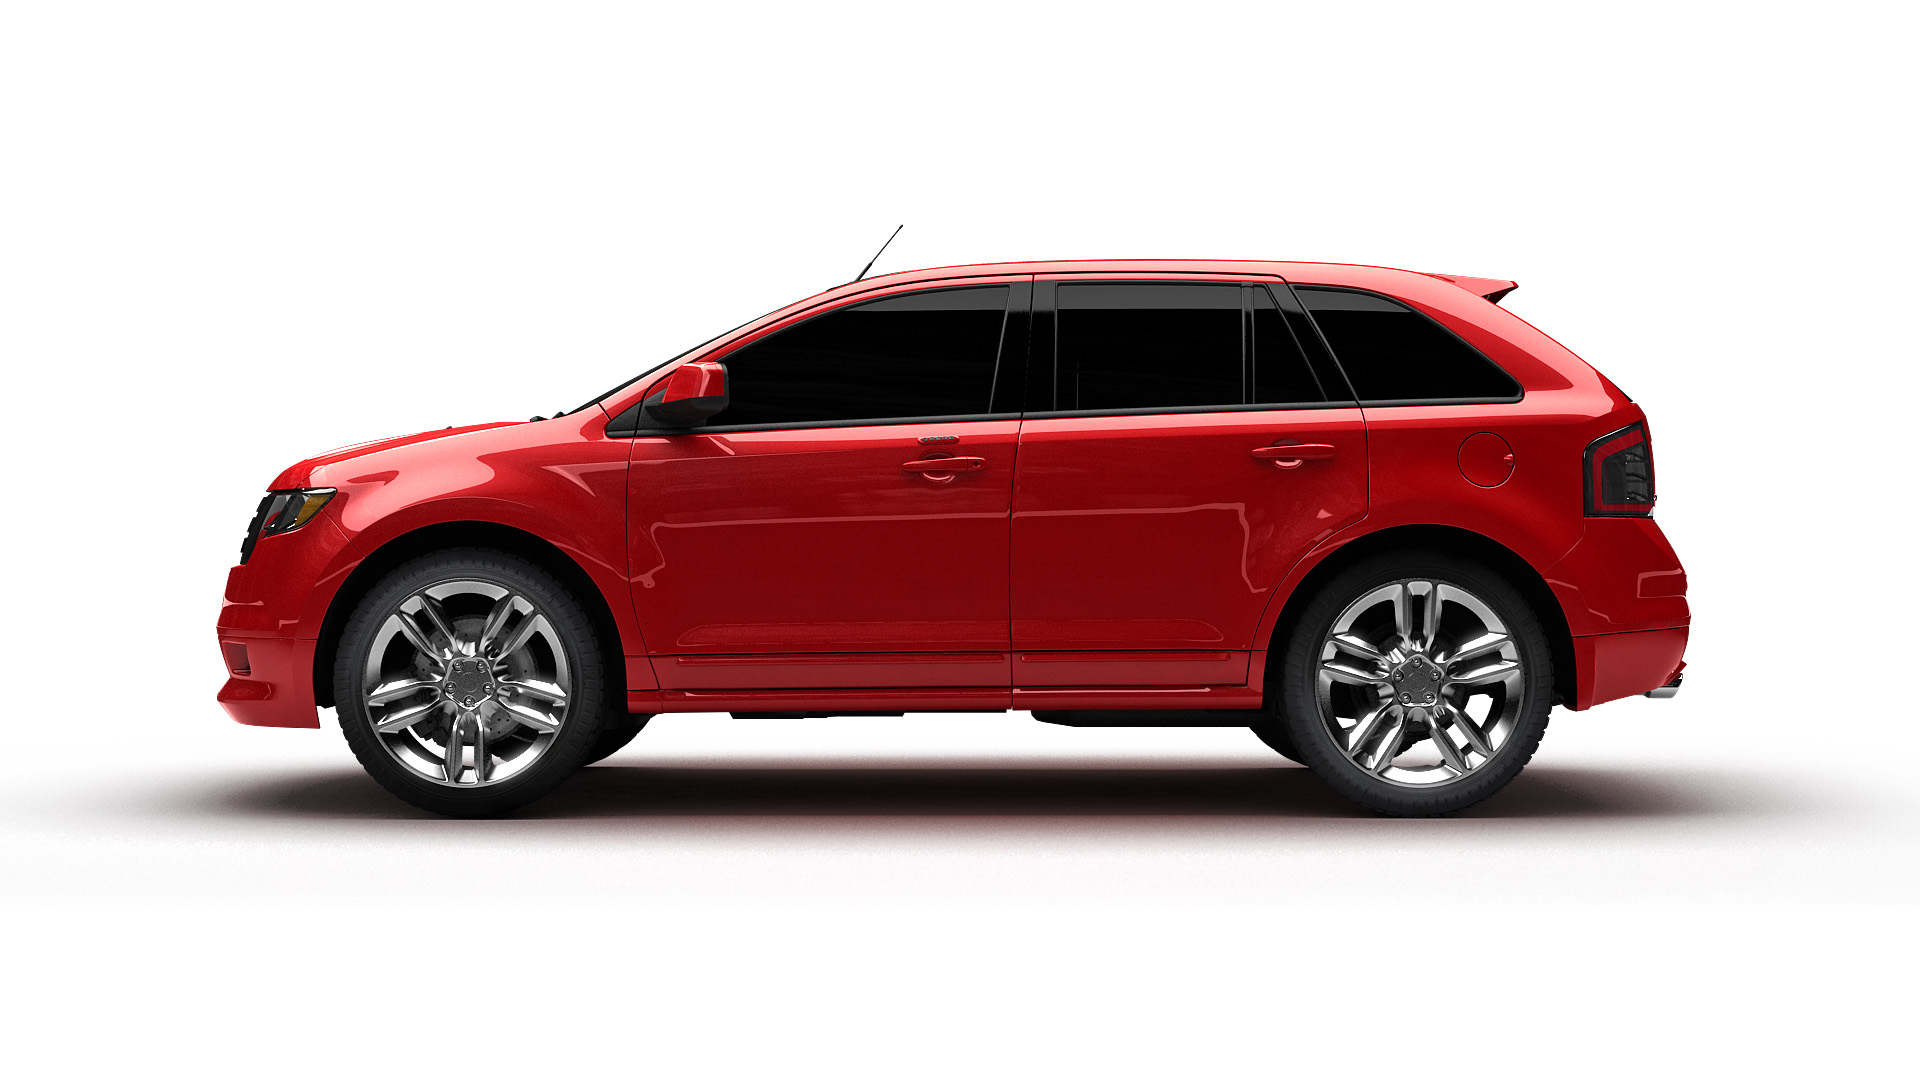 ford_edge_image01